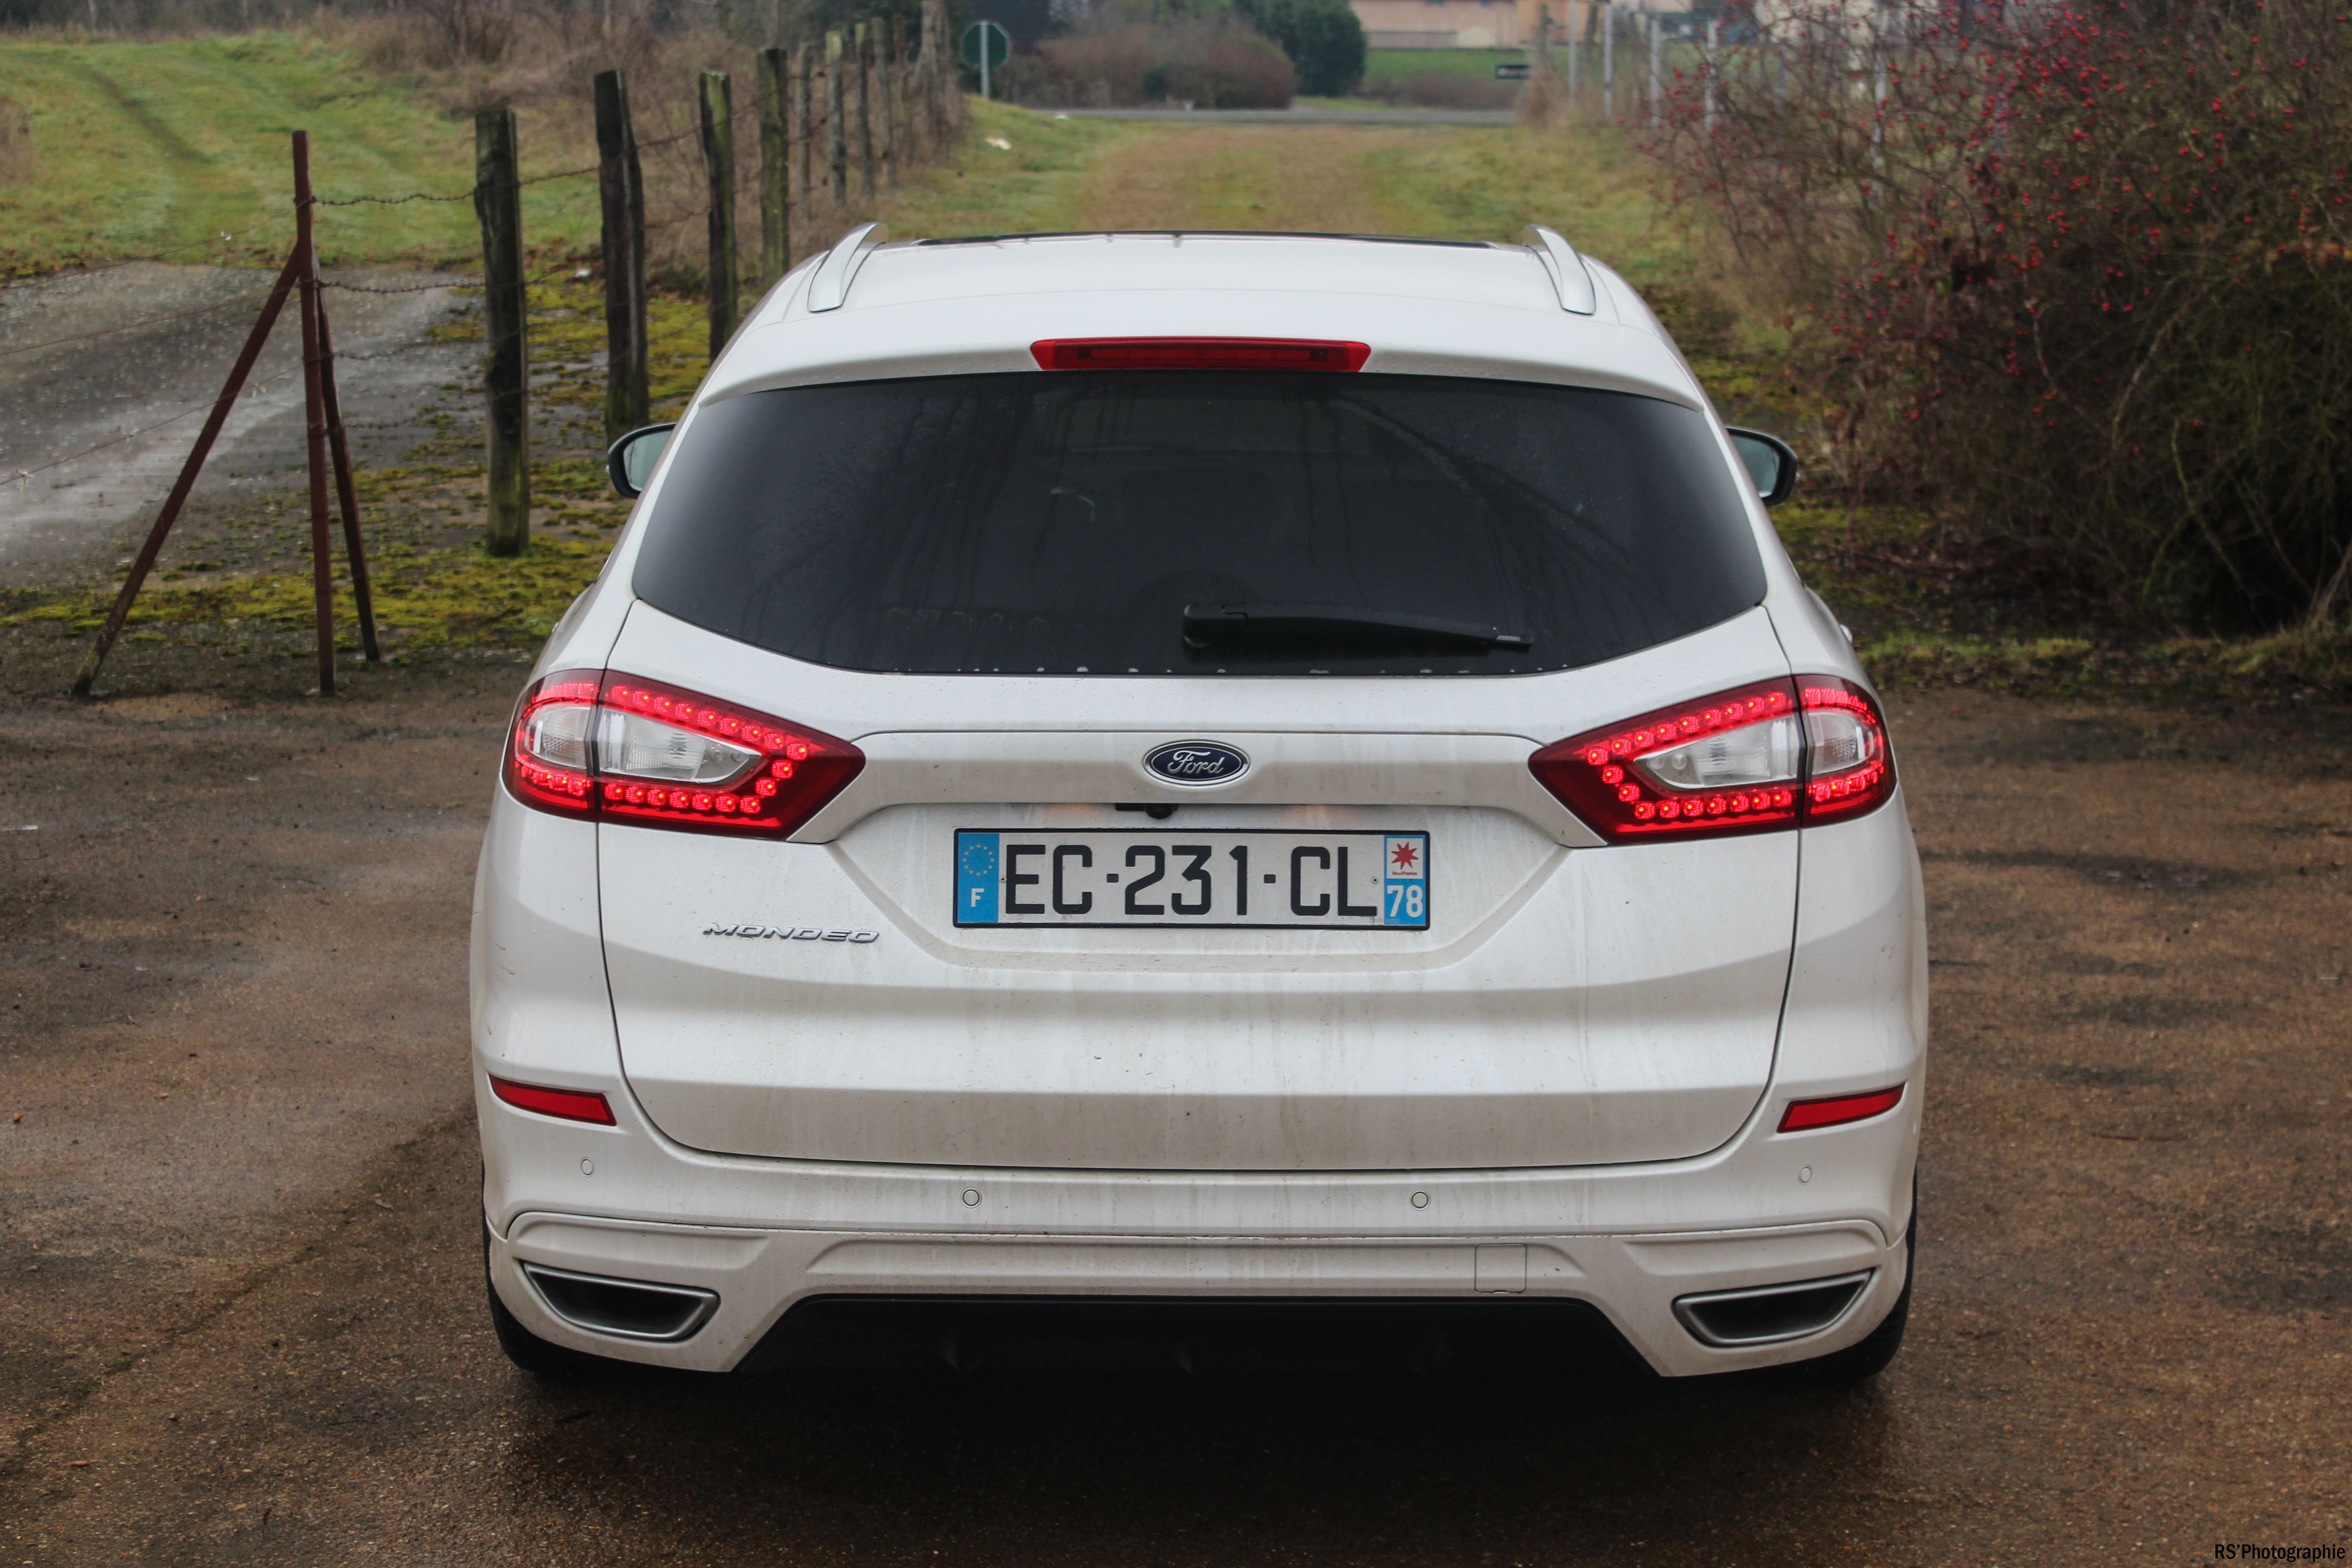 FordMondeoSW24-ford-mondeo-sw-180-arriere-rear-arnaud-demasier-rsphotographie